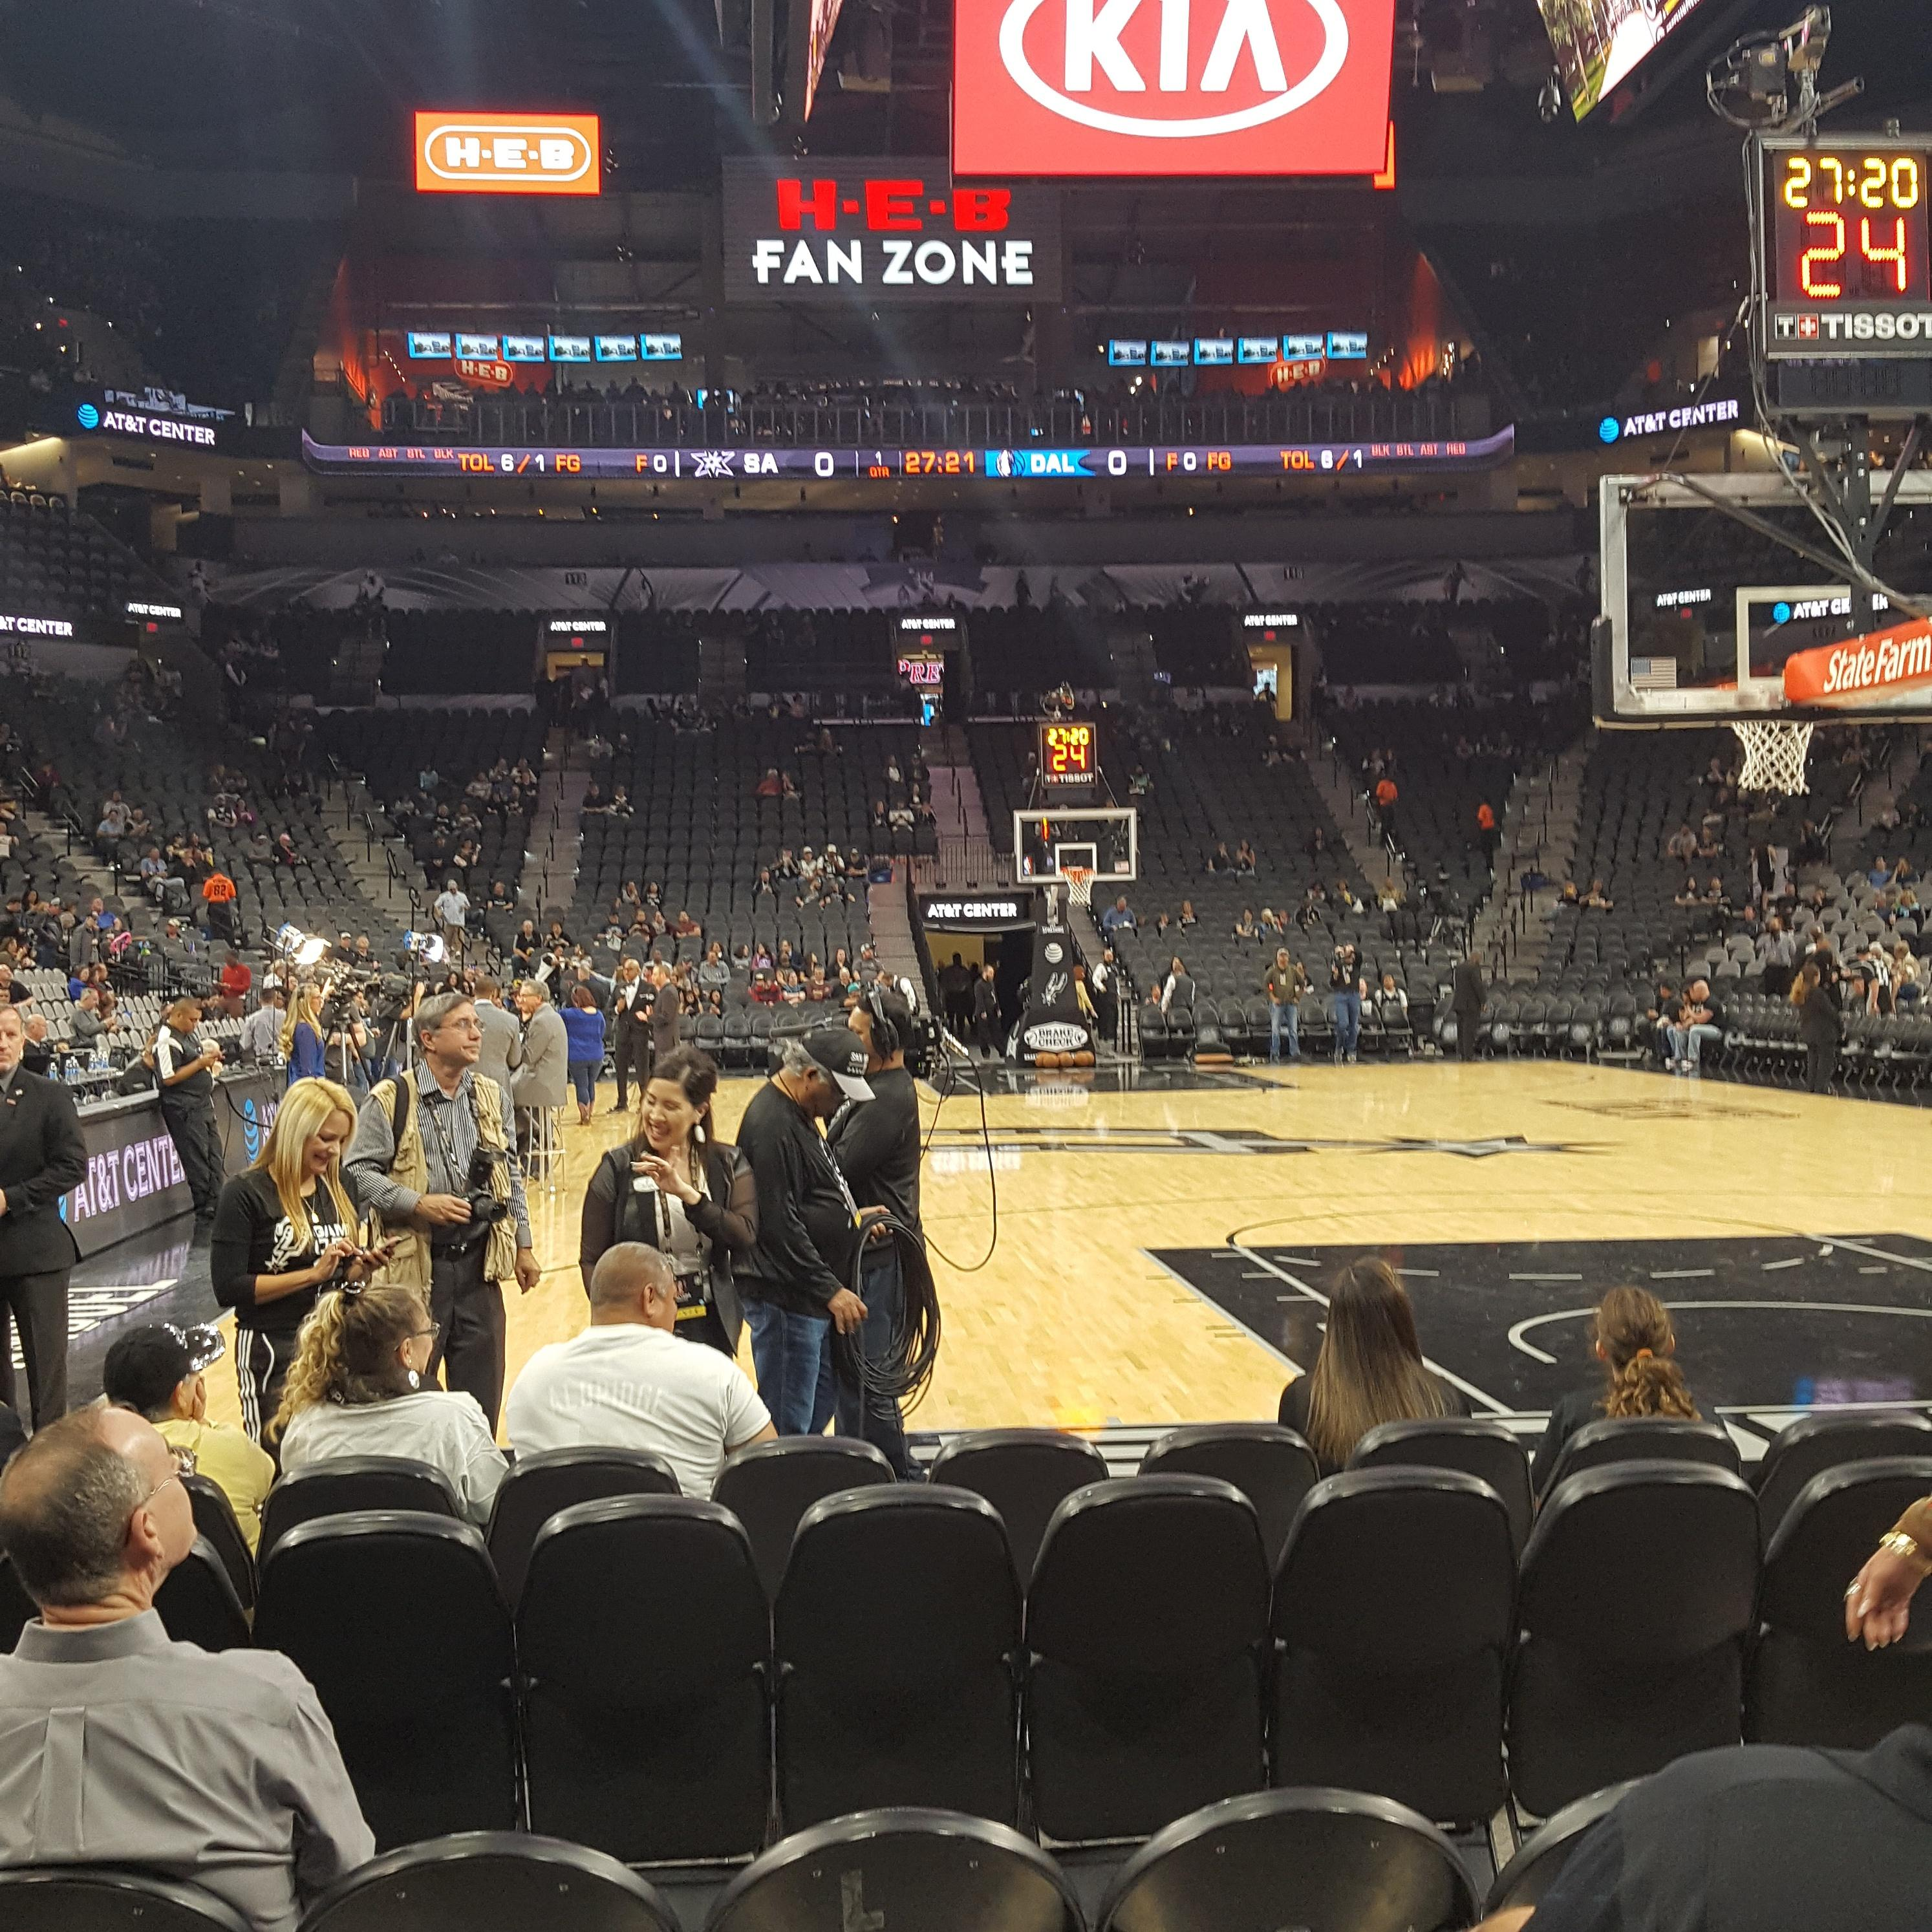 AT&T Center Section 101 Row 7 Seat 6